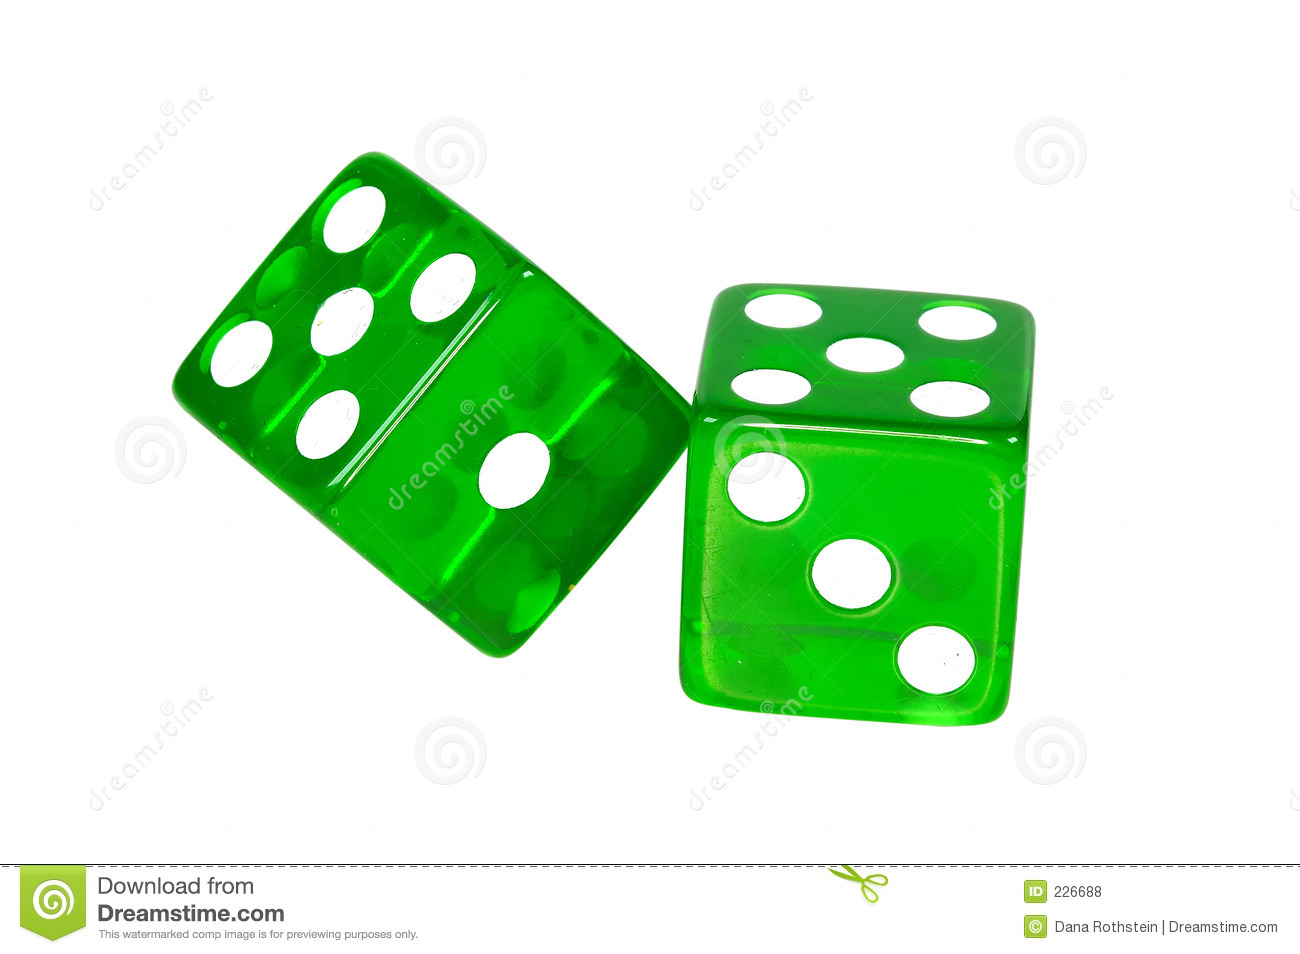 Dice clipart green Dice Bunco Panda Green clipart